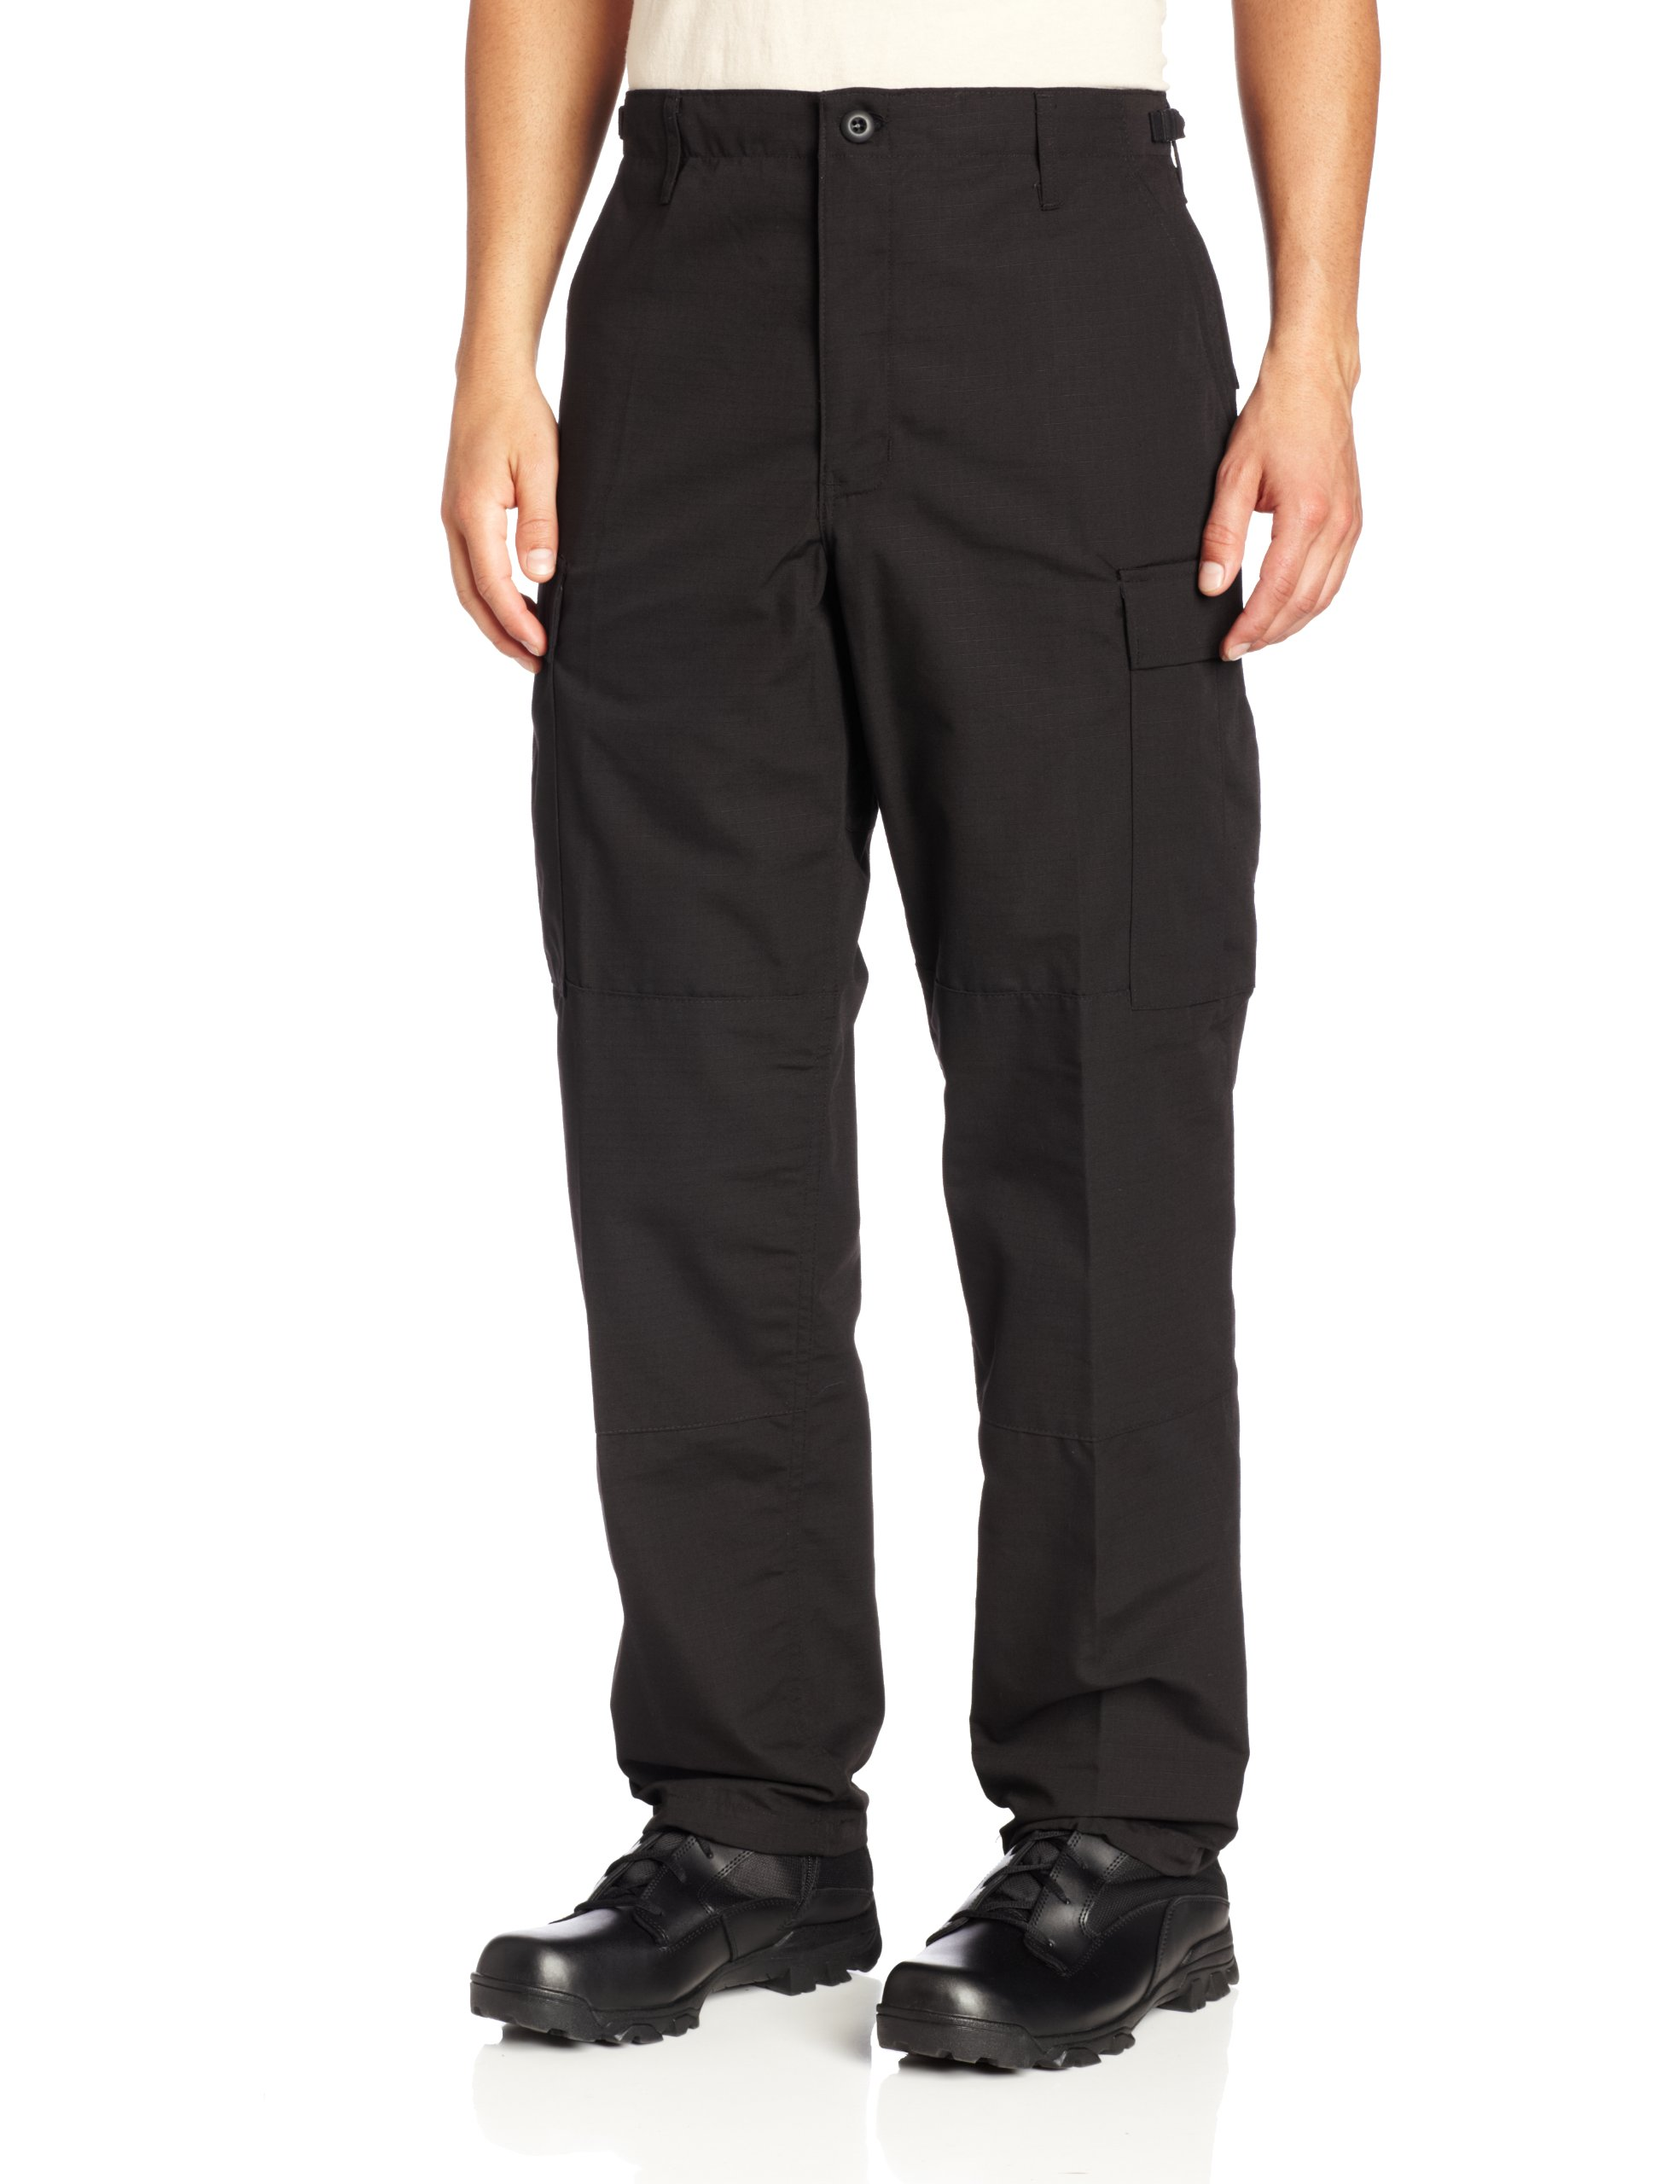 Propper Men's Zip Fly BDU Trouser, Black, Large Regular